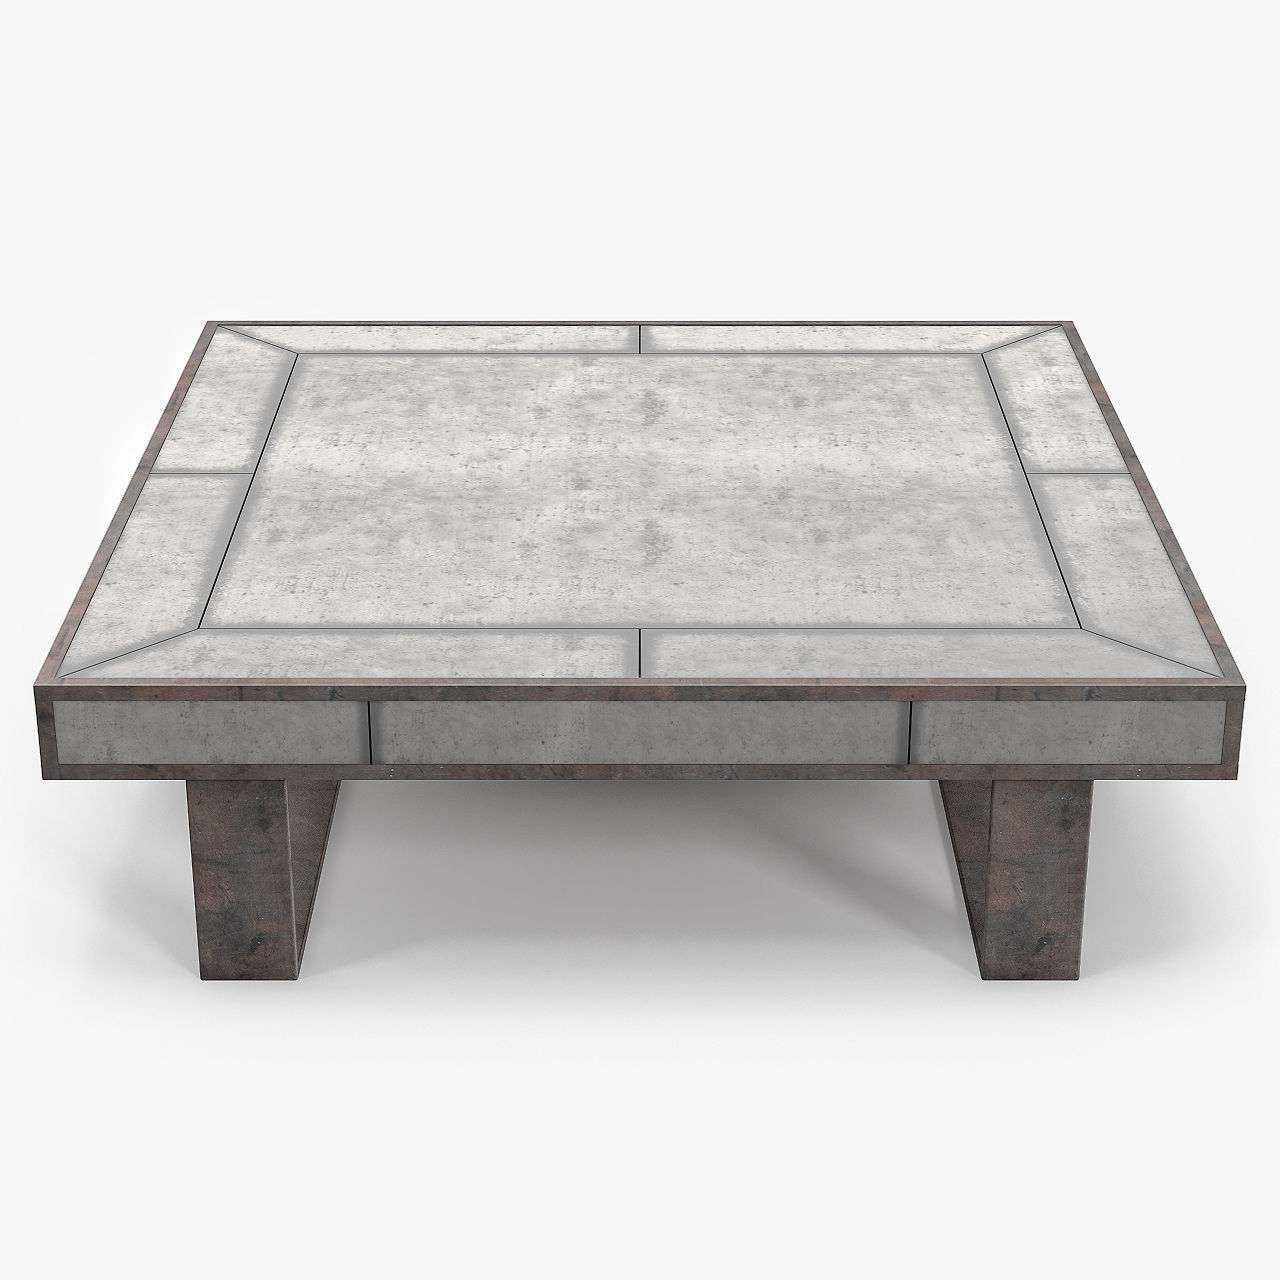 Louise Bradley Antique Mirror Coffee Table 3d Model Max Obj Fbx Mtl Pertaining To Recent Vintage Mirror Coffee Tables (View 19 of 20)